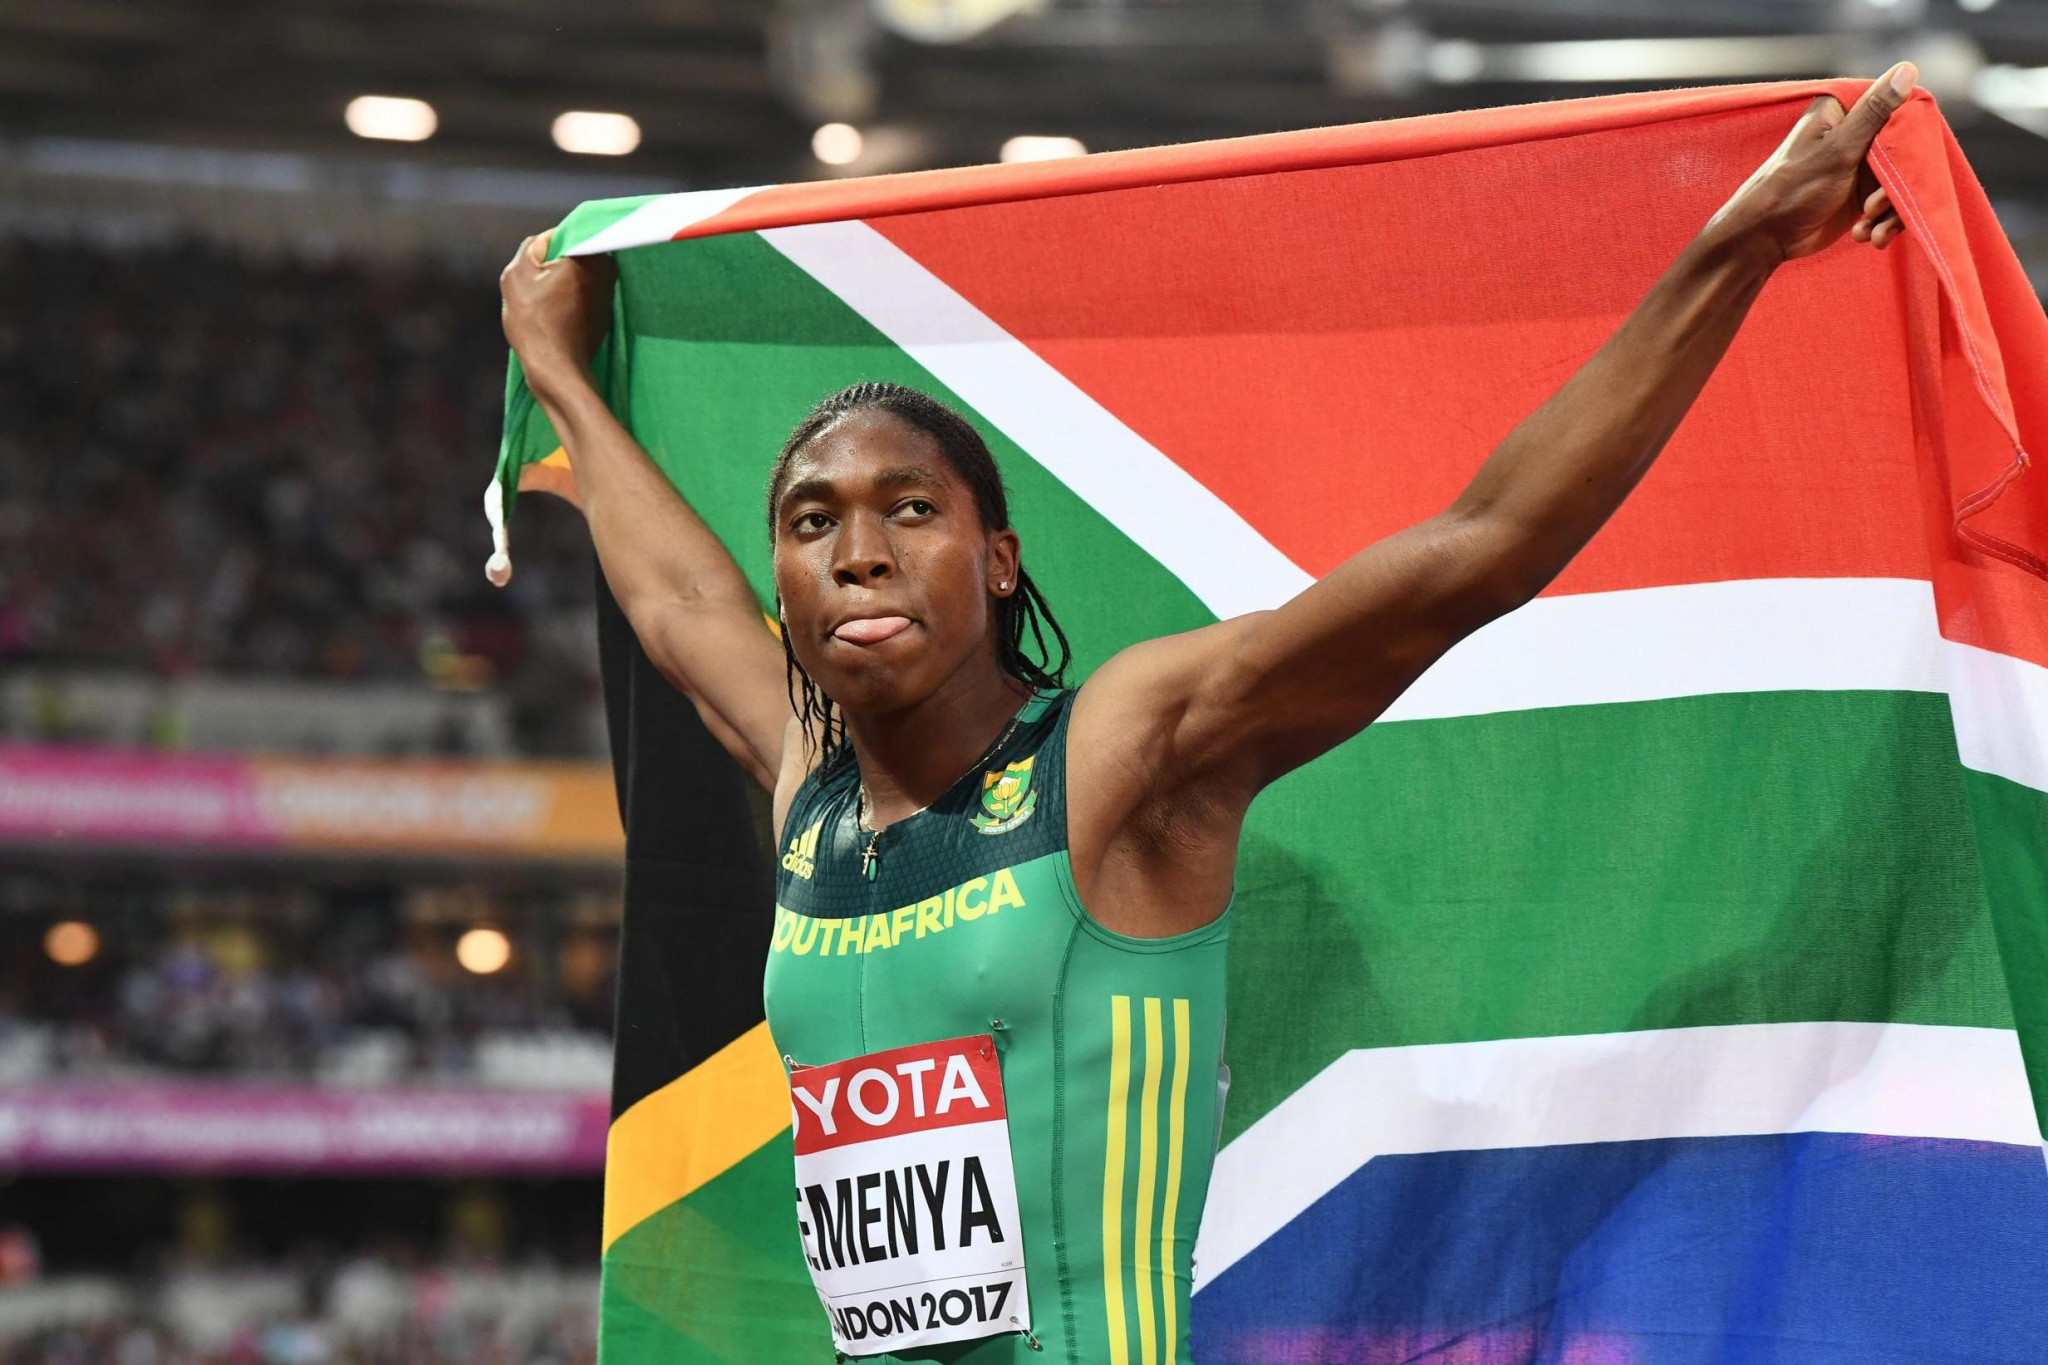 Next year's Athletics South Africa Senior Championships have been re-scheduled to take place before the Gold Coast 2018 ©Getty Images